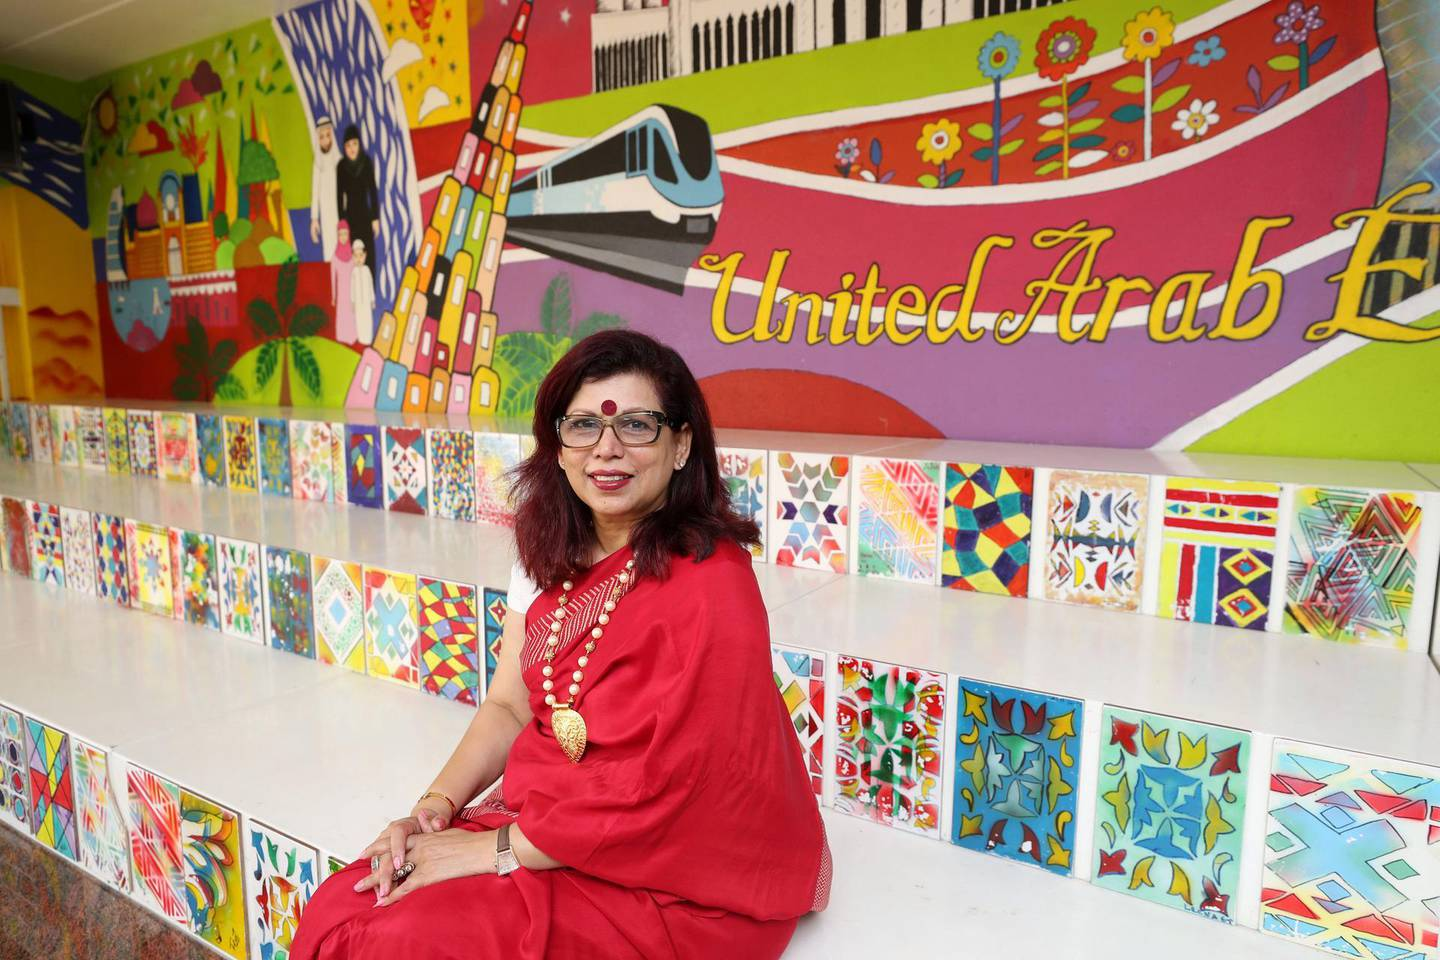 Dubai, United Arab Emirates - February 14, 2019: Rashmi Nandkeolyar, principal at Delhi Private School. Rahhal programme is in its second phase and heads of schools are discussing the challenges it faces. Thursday the 14th of February 2019 at The Gardens, Jebel Ali, Dubai. Chris Whiteoak / The National